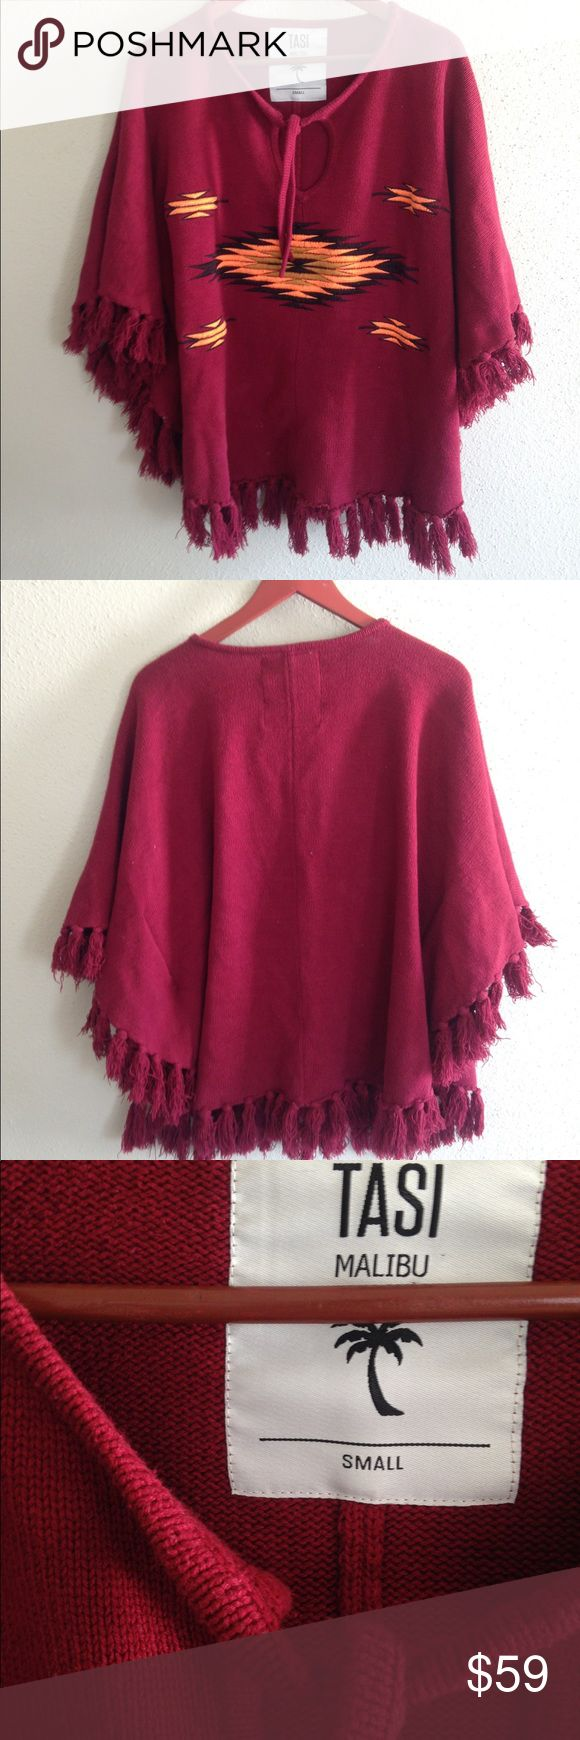 Tasi 🌴 Malibu Red Cruz Pullover Poncho Super cute, warm poncho in excellent condition. Not super heavy but would keep you warm on a chilly night out. Adorable and unique. Oversized. Was sold on the Free People website. Free People Sweaters Shrugs & Ponchos